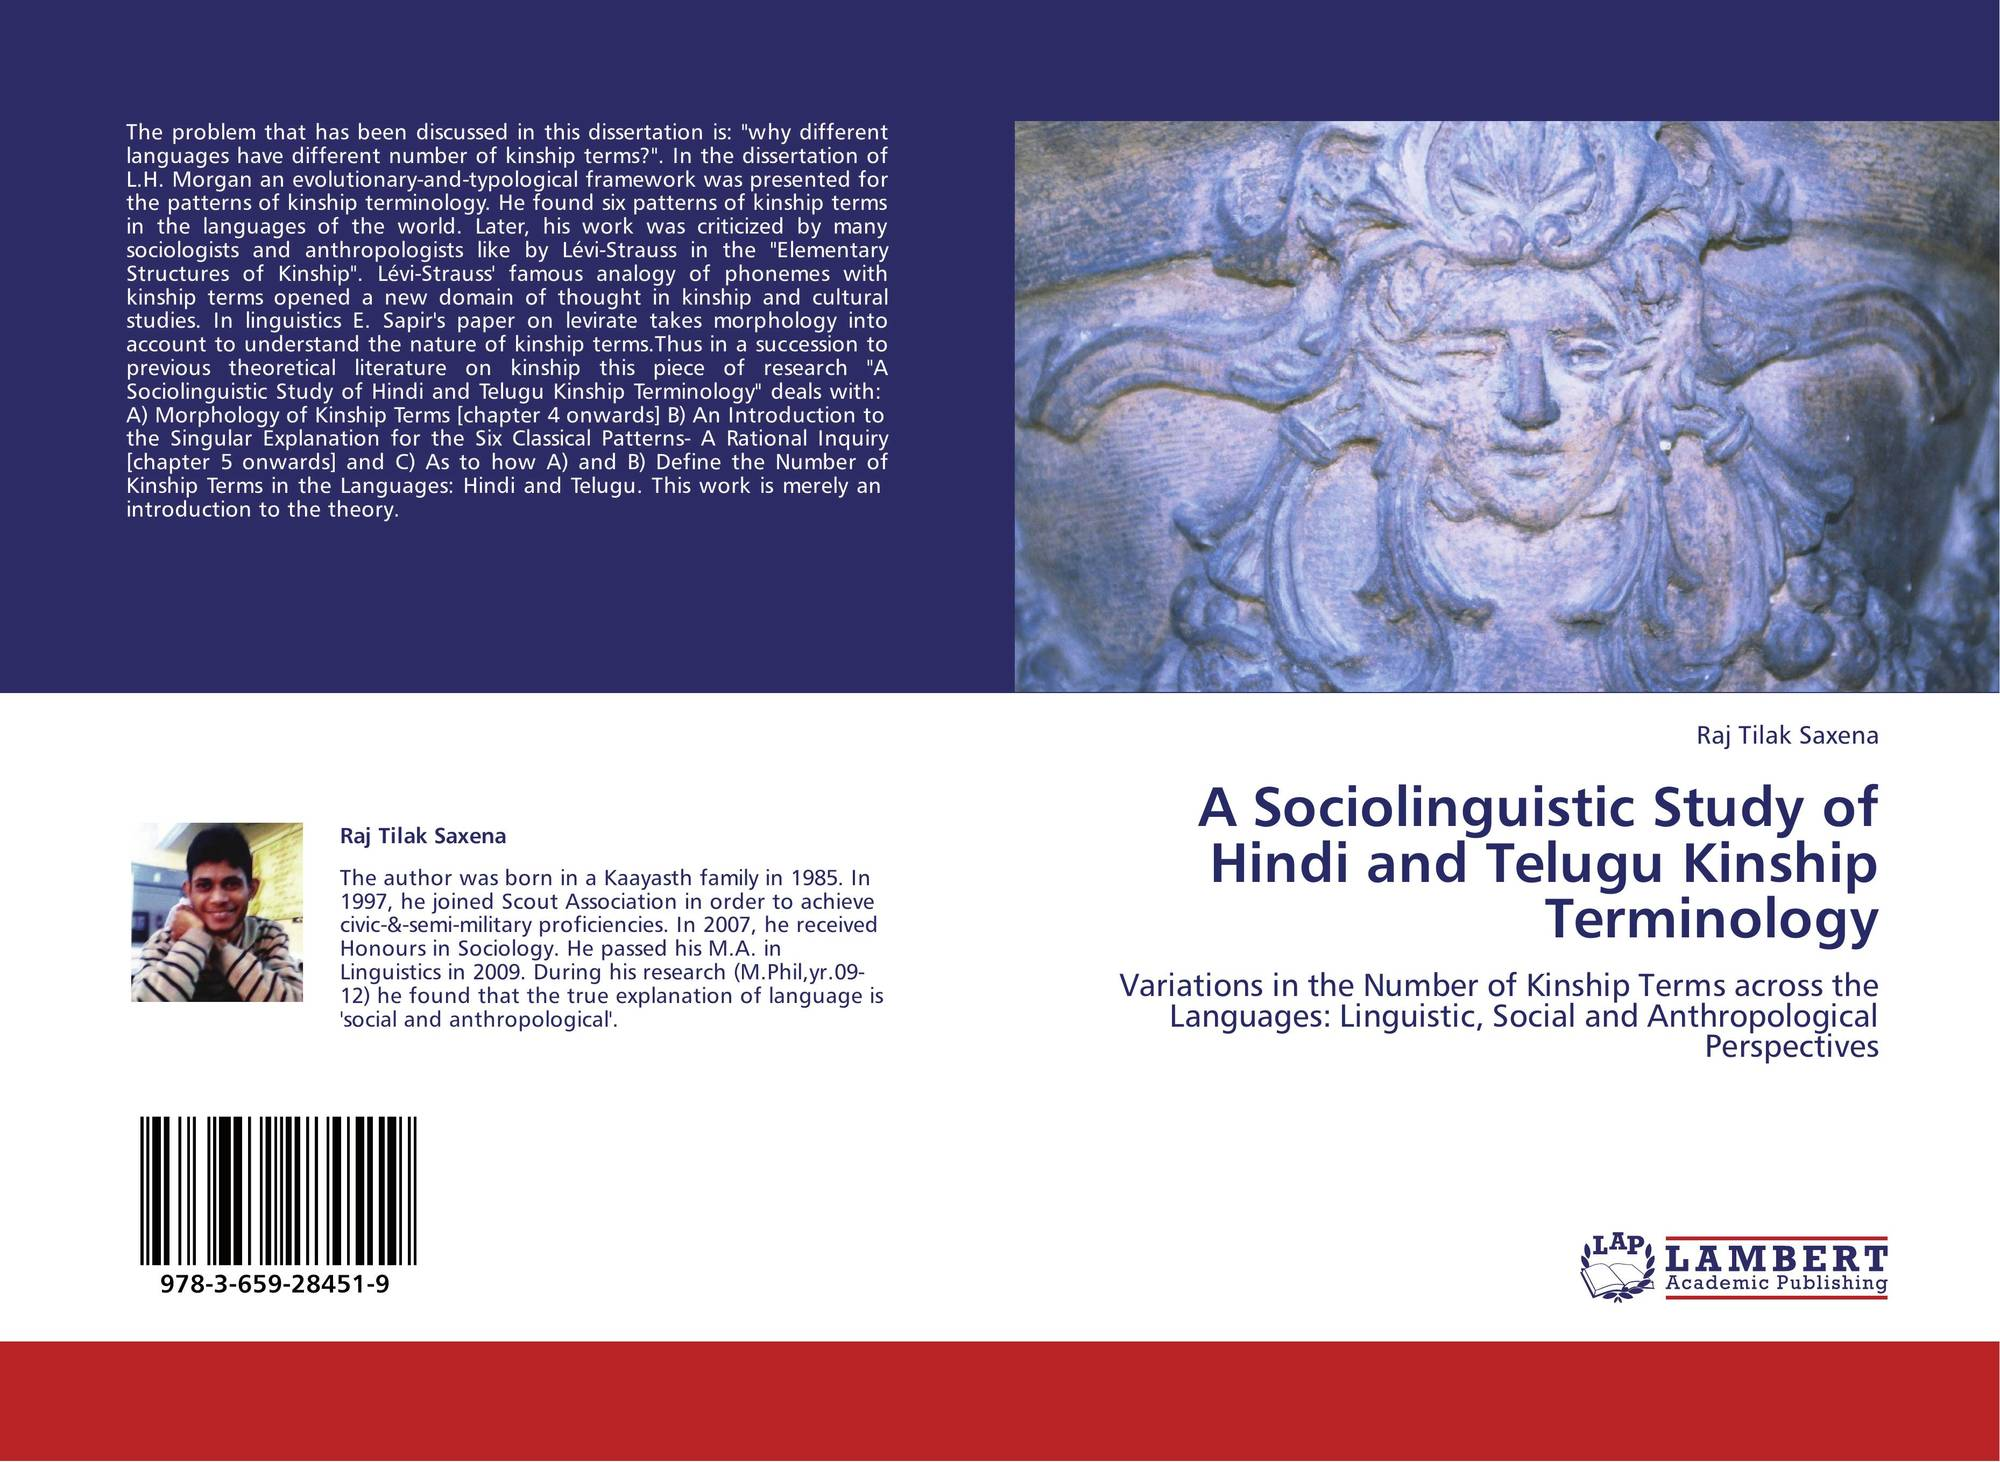 A Sociolinguistic Study of Hindi and Telugu Kinship Terminology